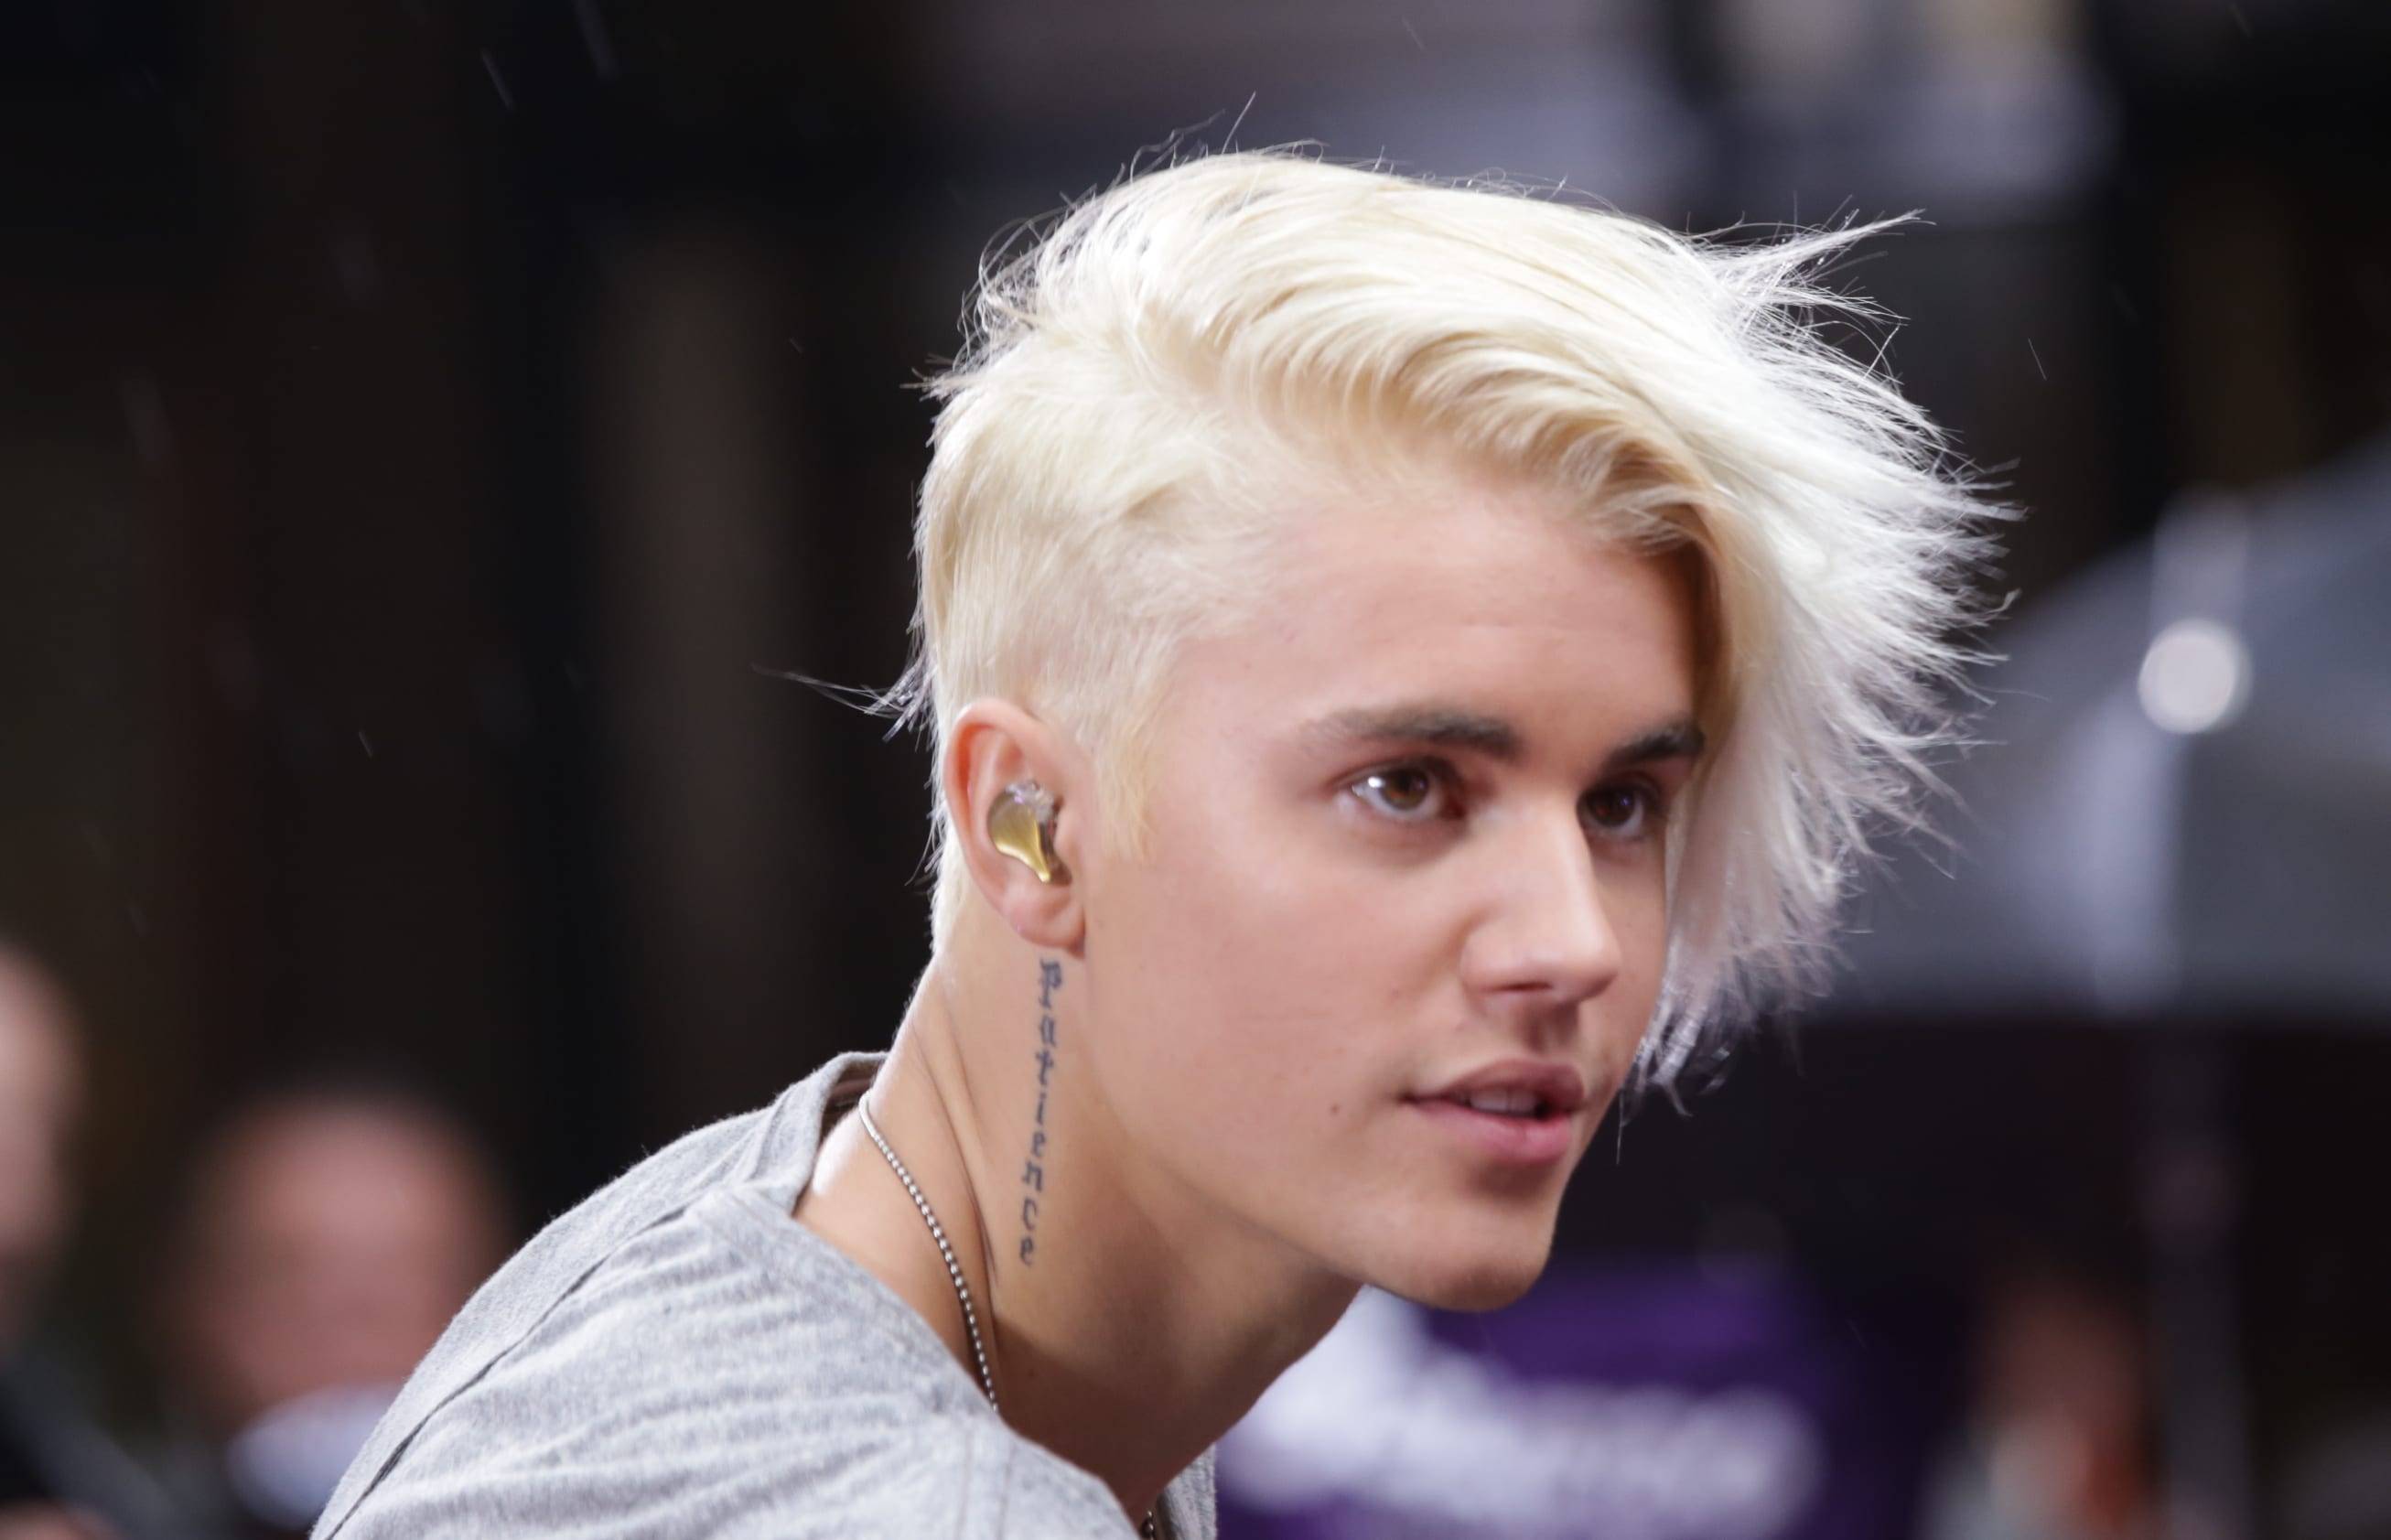 Justin Bieber As A Blonde Love It Or Loathe It The Hollywood - Justin bieber hairstyle on ellen